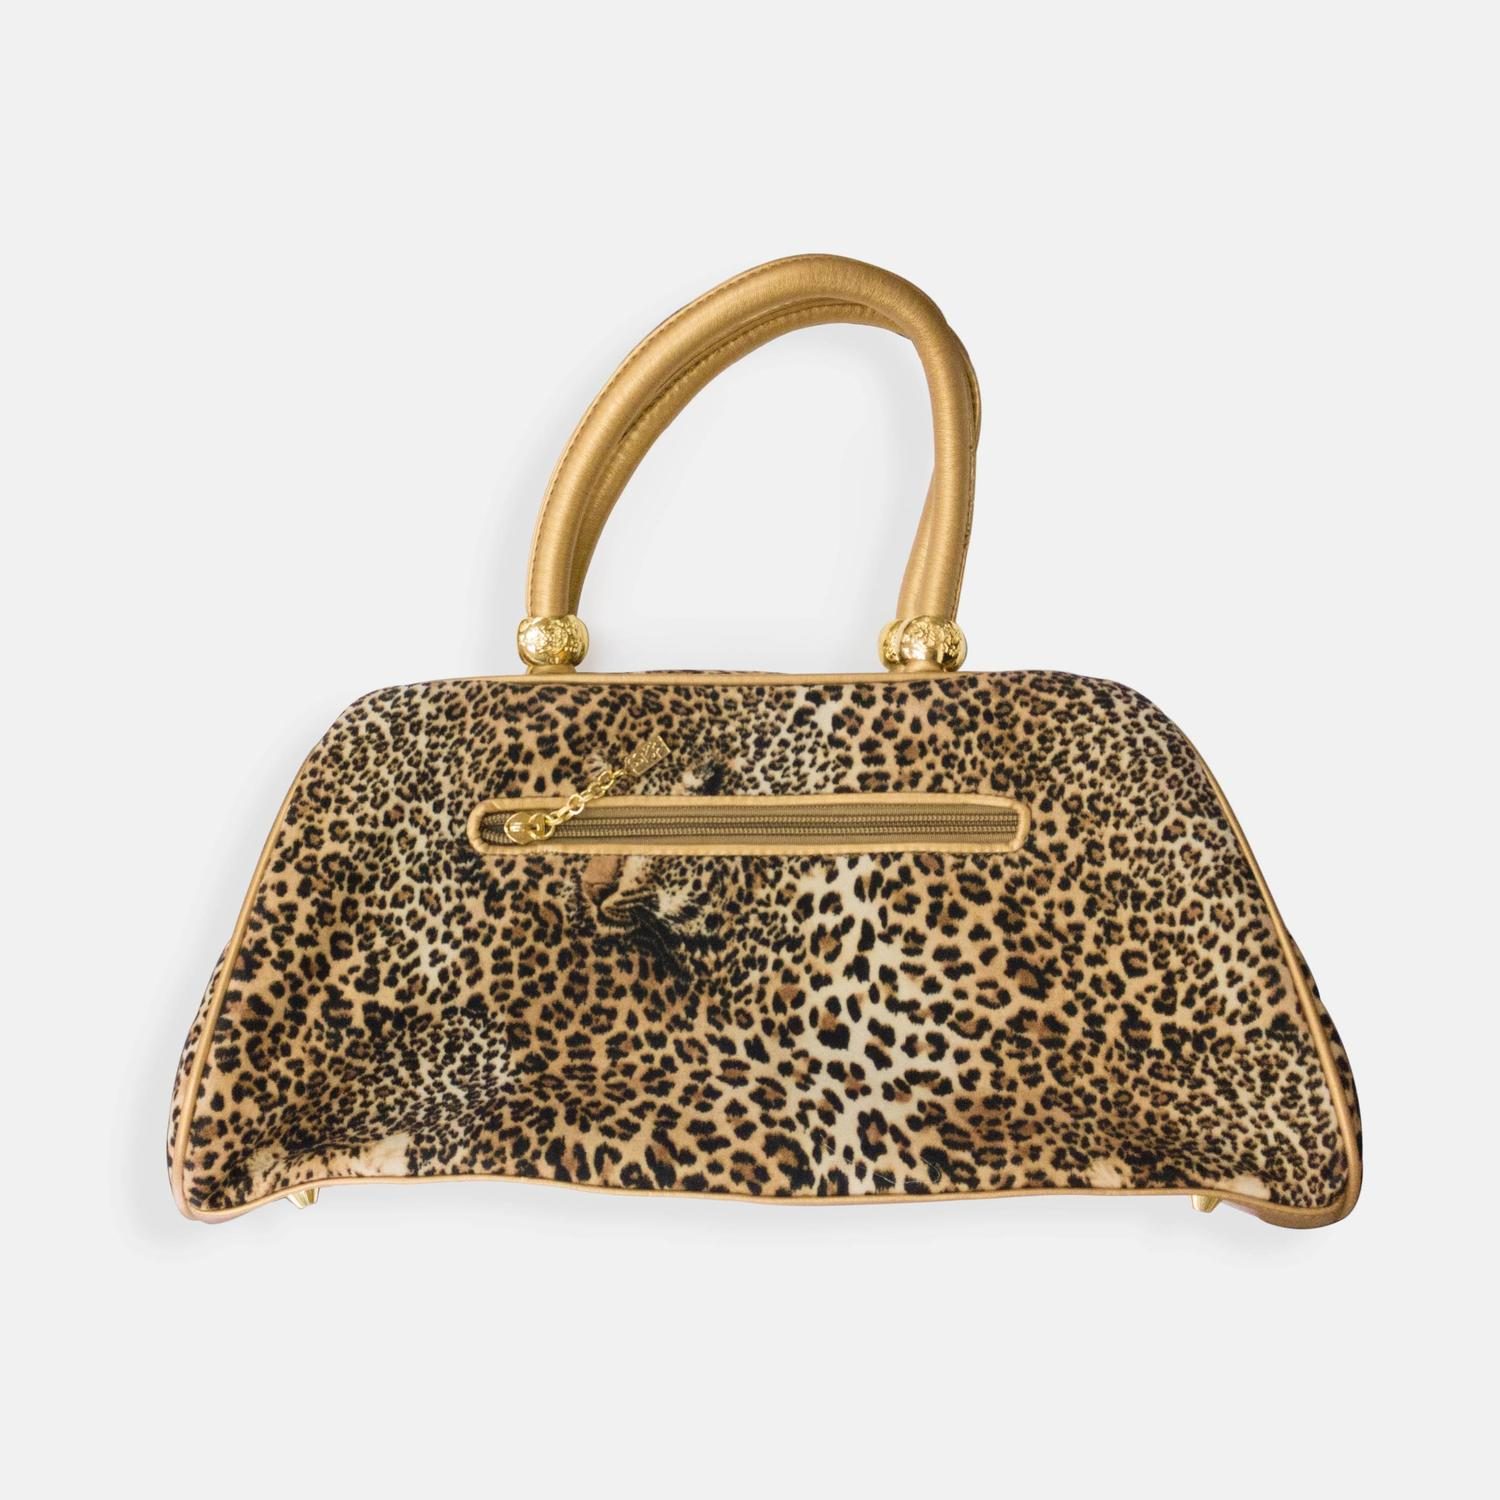 Find great deals on eBay for leopard handbag purse. Shop with confidence.